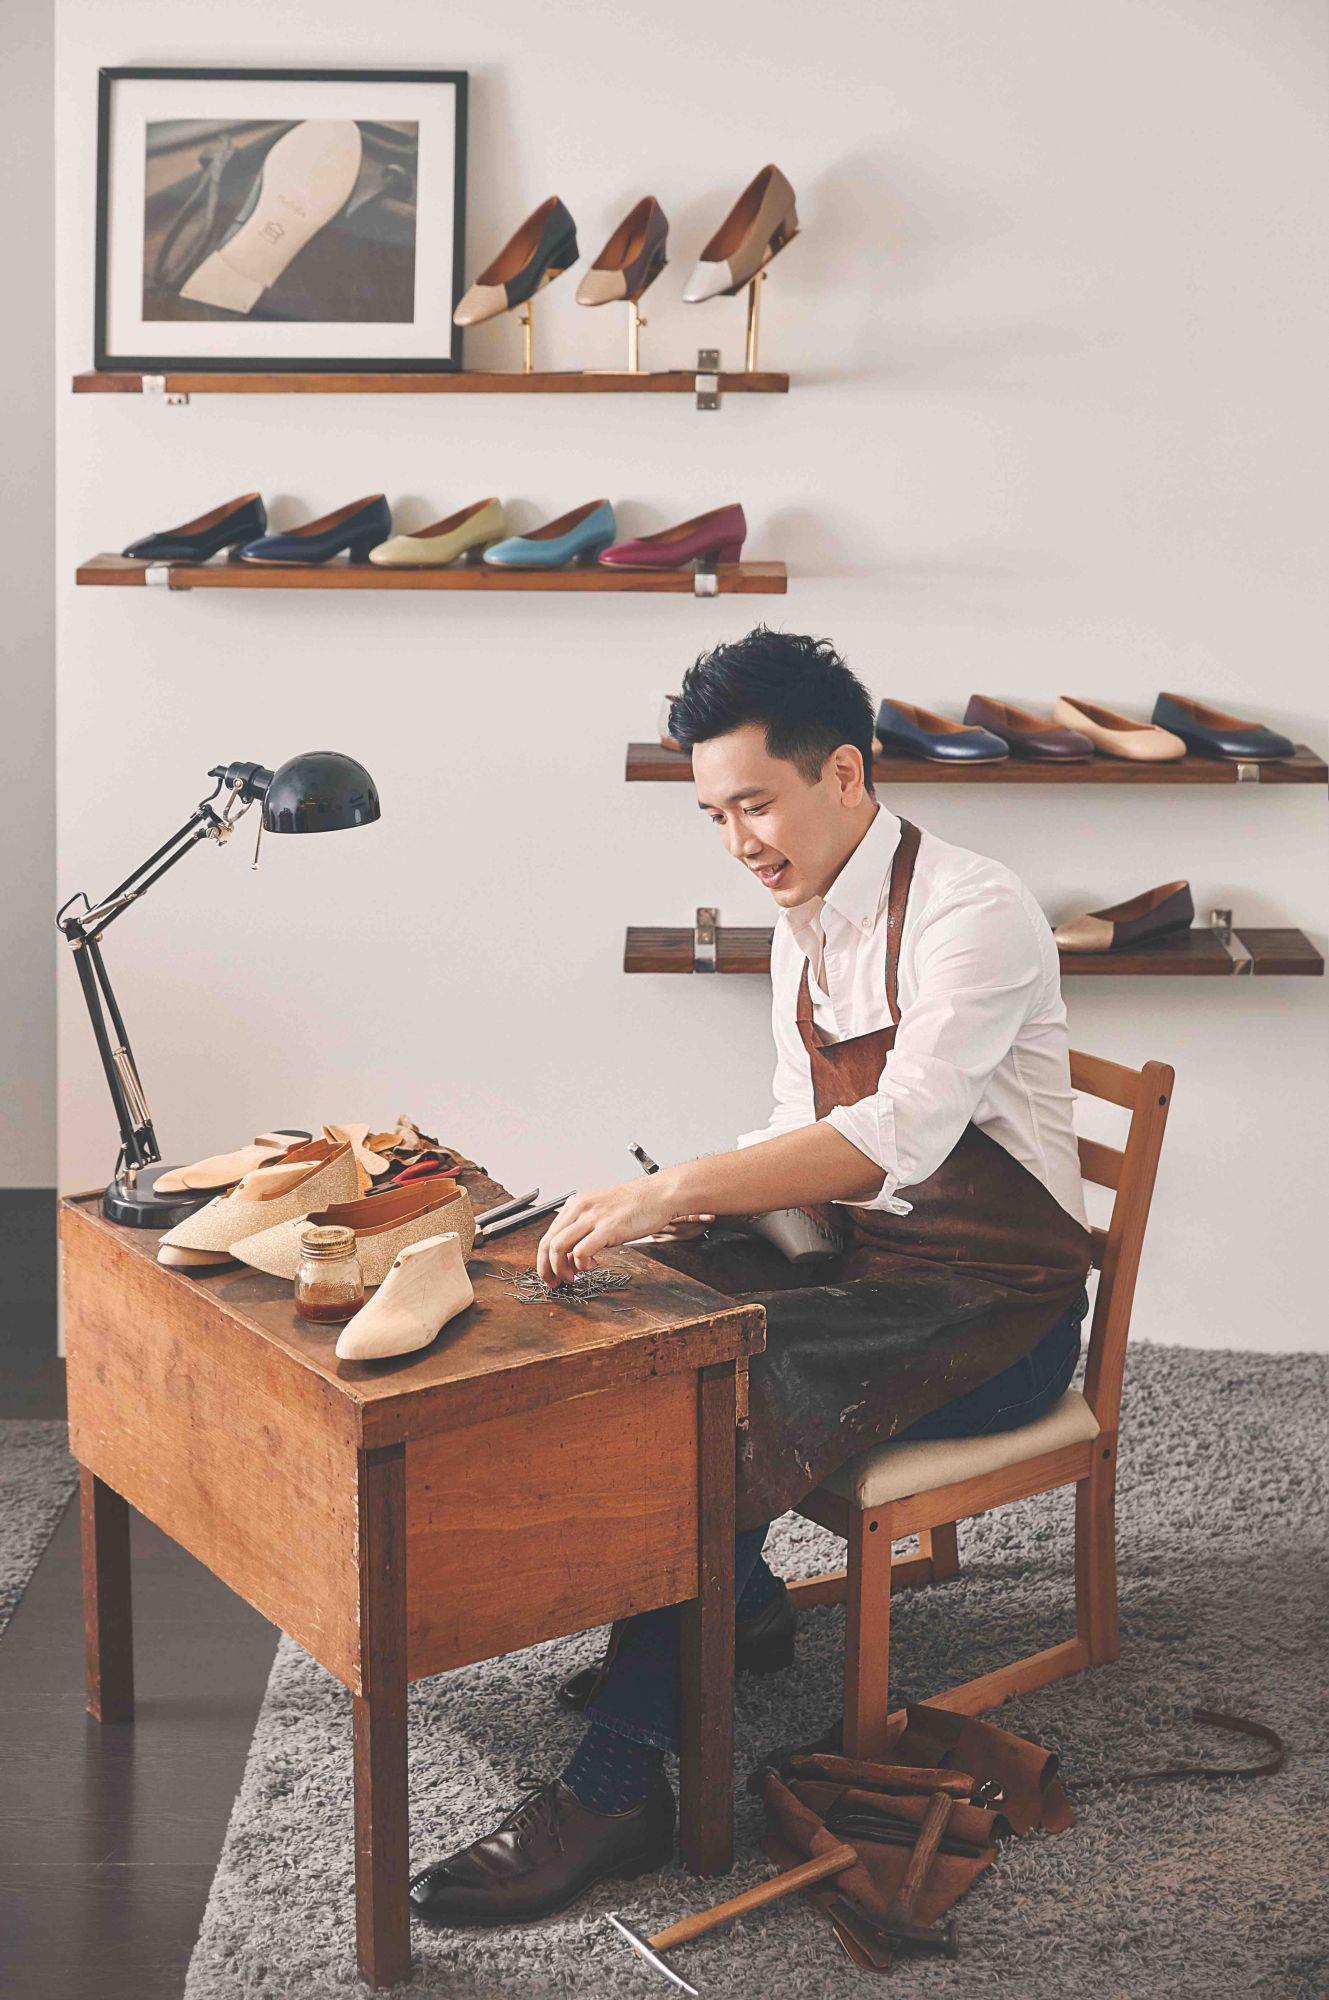 Singaporean Shoemaker Josh Leong Shares His Love of Leather and Functional Footwear